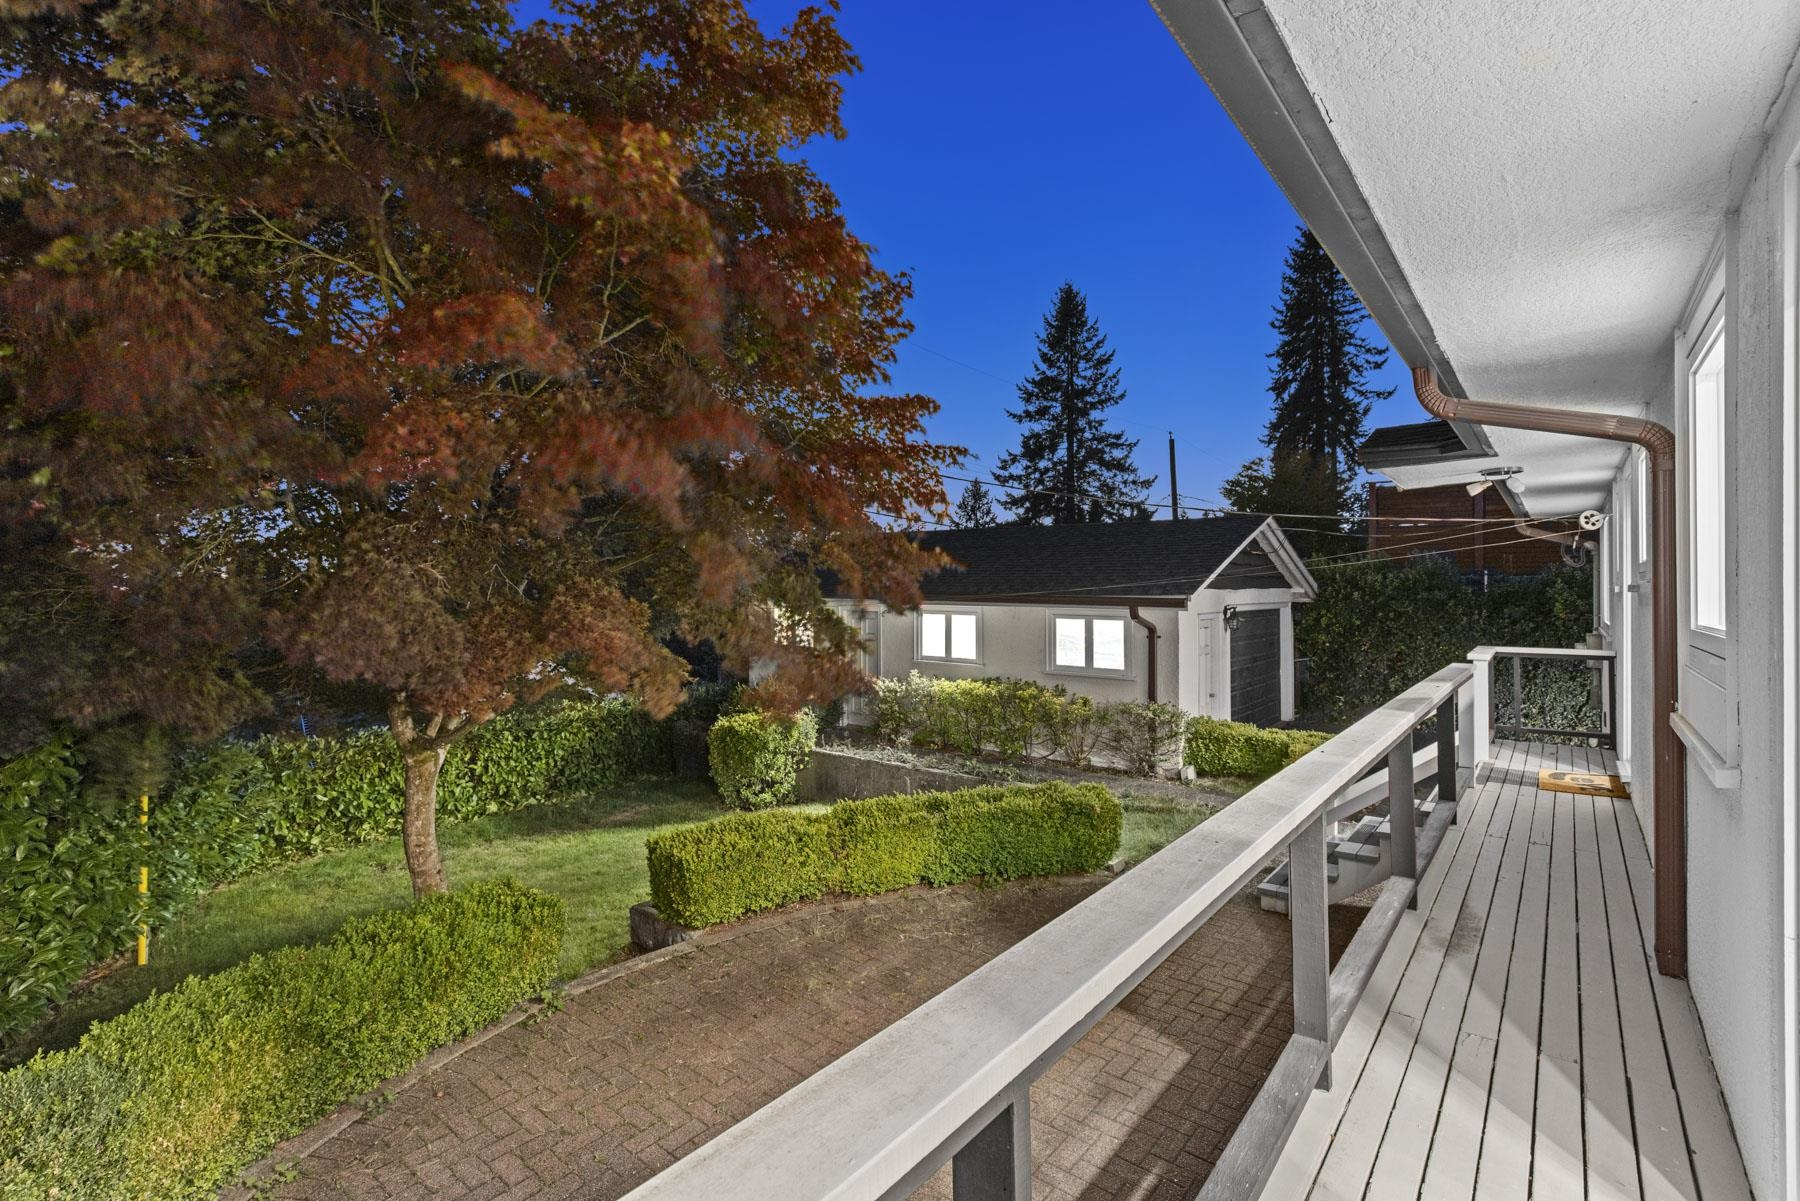 Listing image of 965 BEAUMONT DRIVE